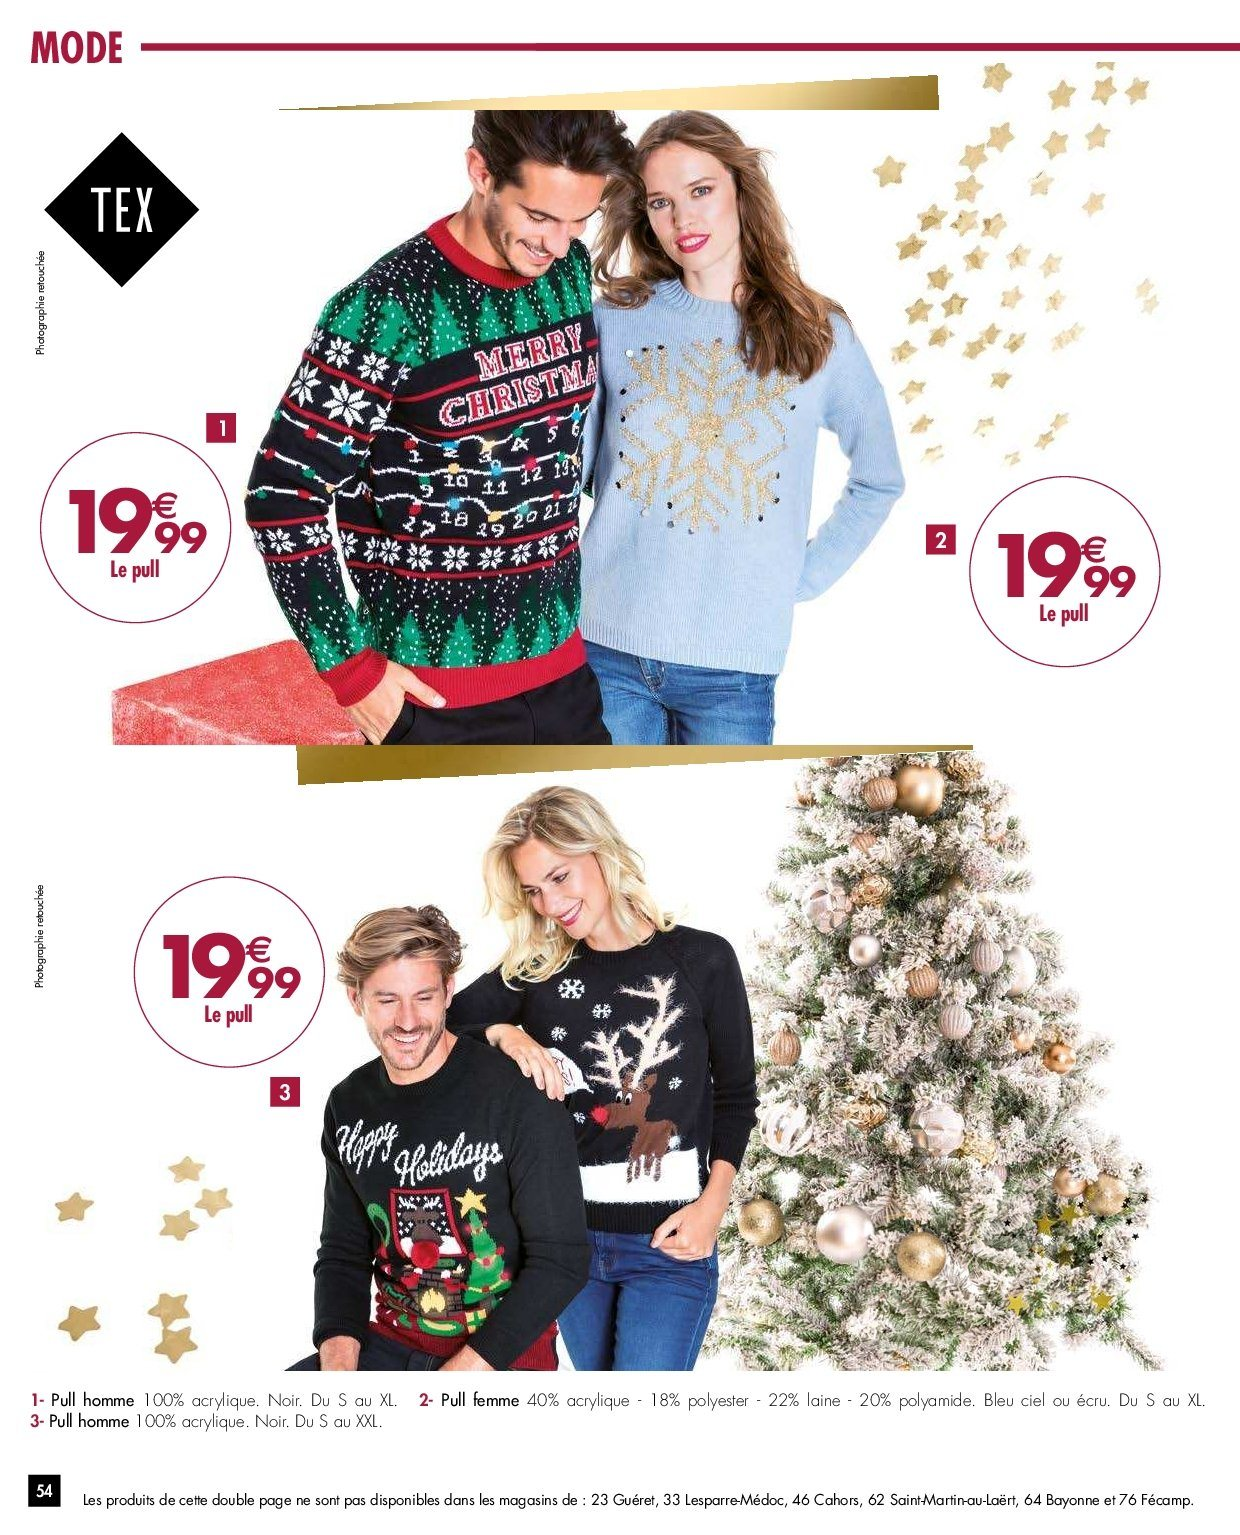 Catalogue Carrefour - 27.11.2018 - 03.12.2018. Page 54.